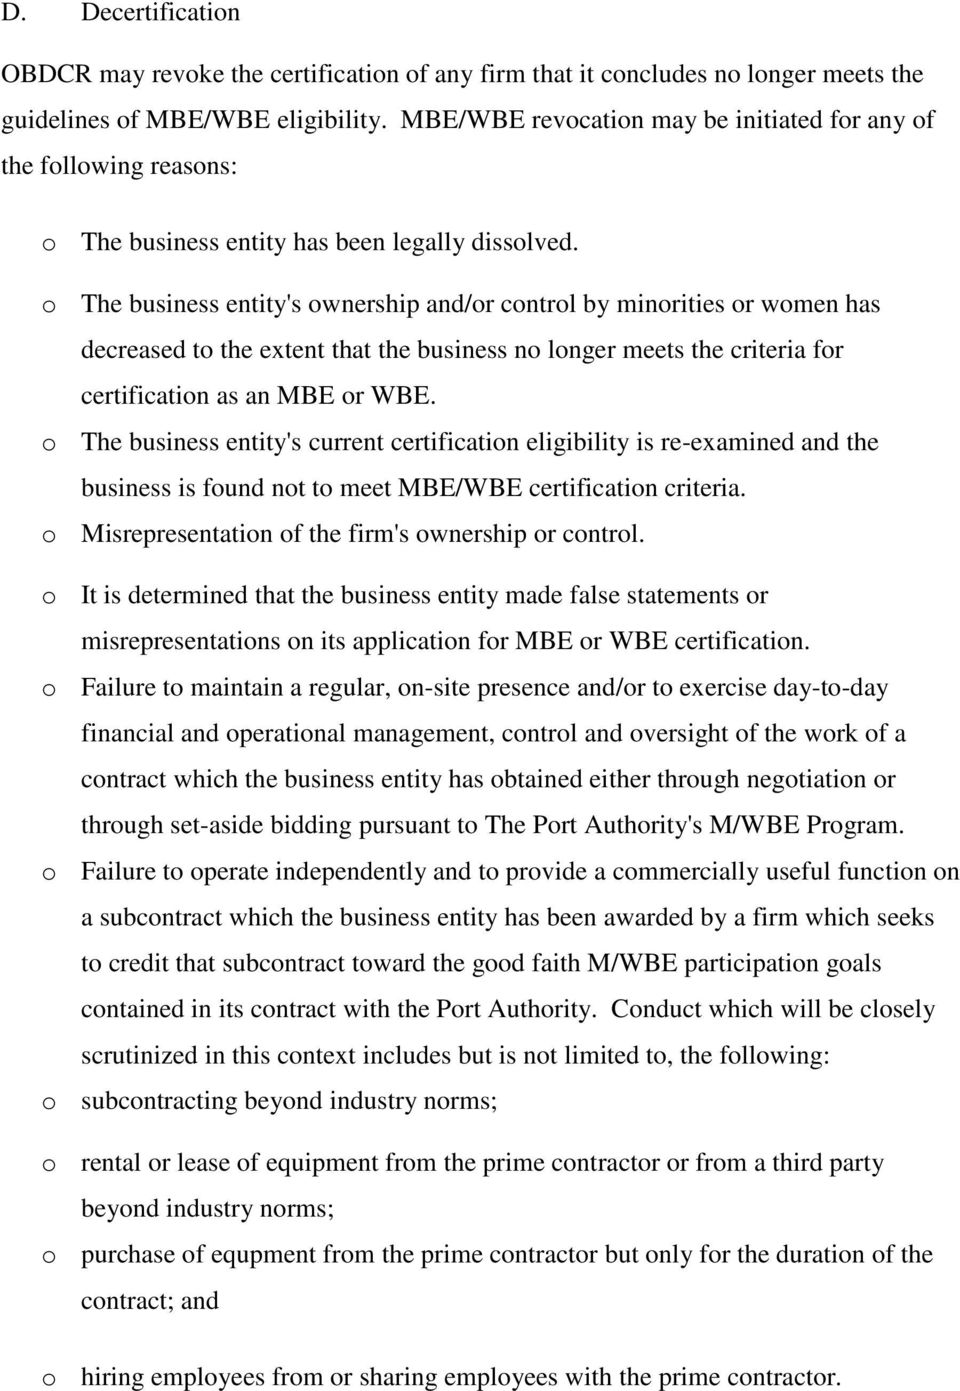 o The business entity's ownership and/or control by minorities or women has decreased to the extent that the business no longer meets the criteria for certification as an MBE or WBE.